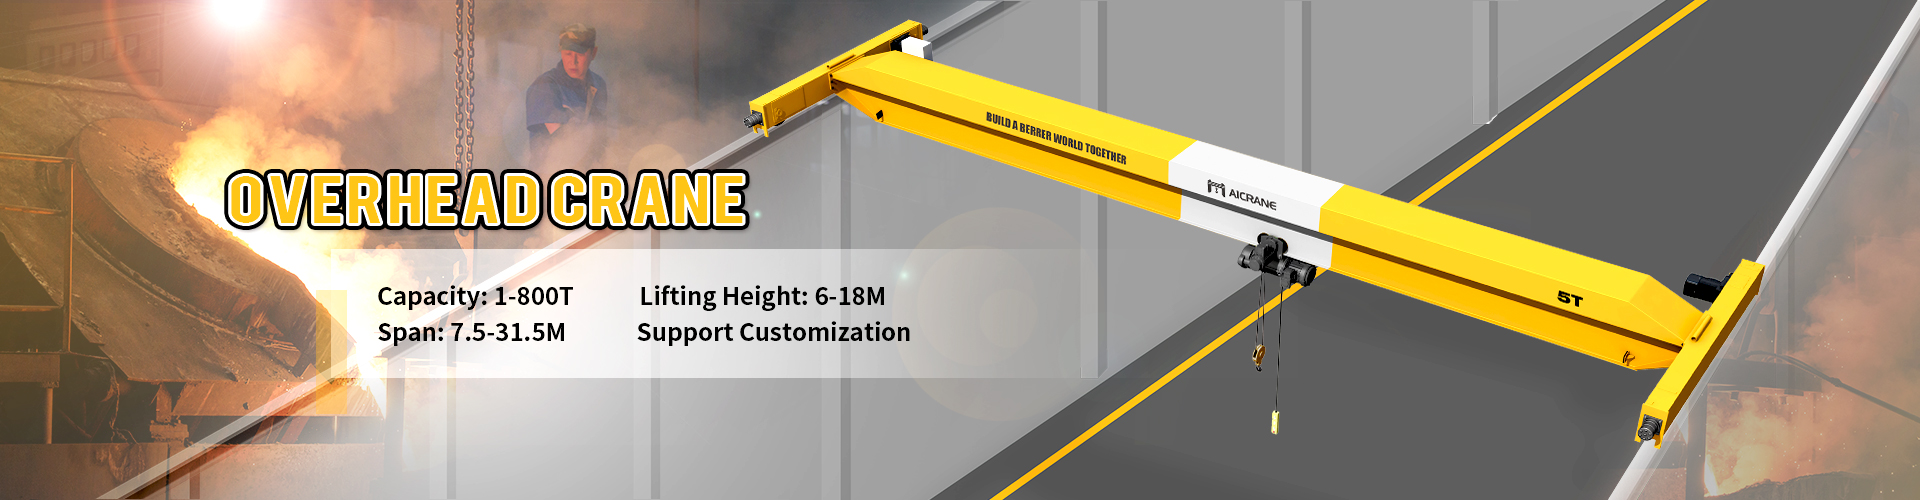 overhead crane and gantry crane manufactruer